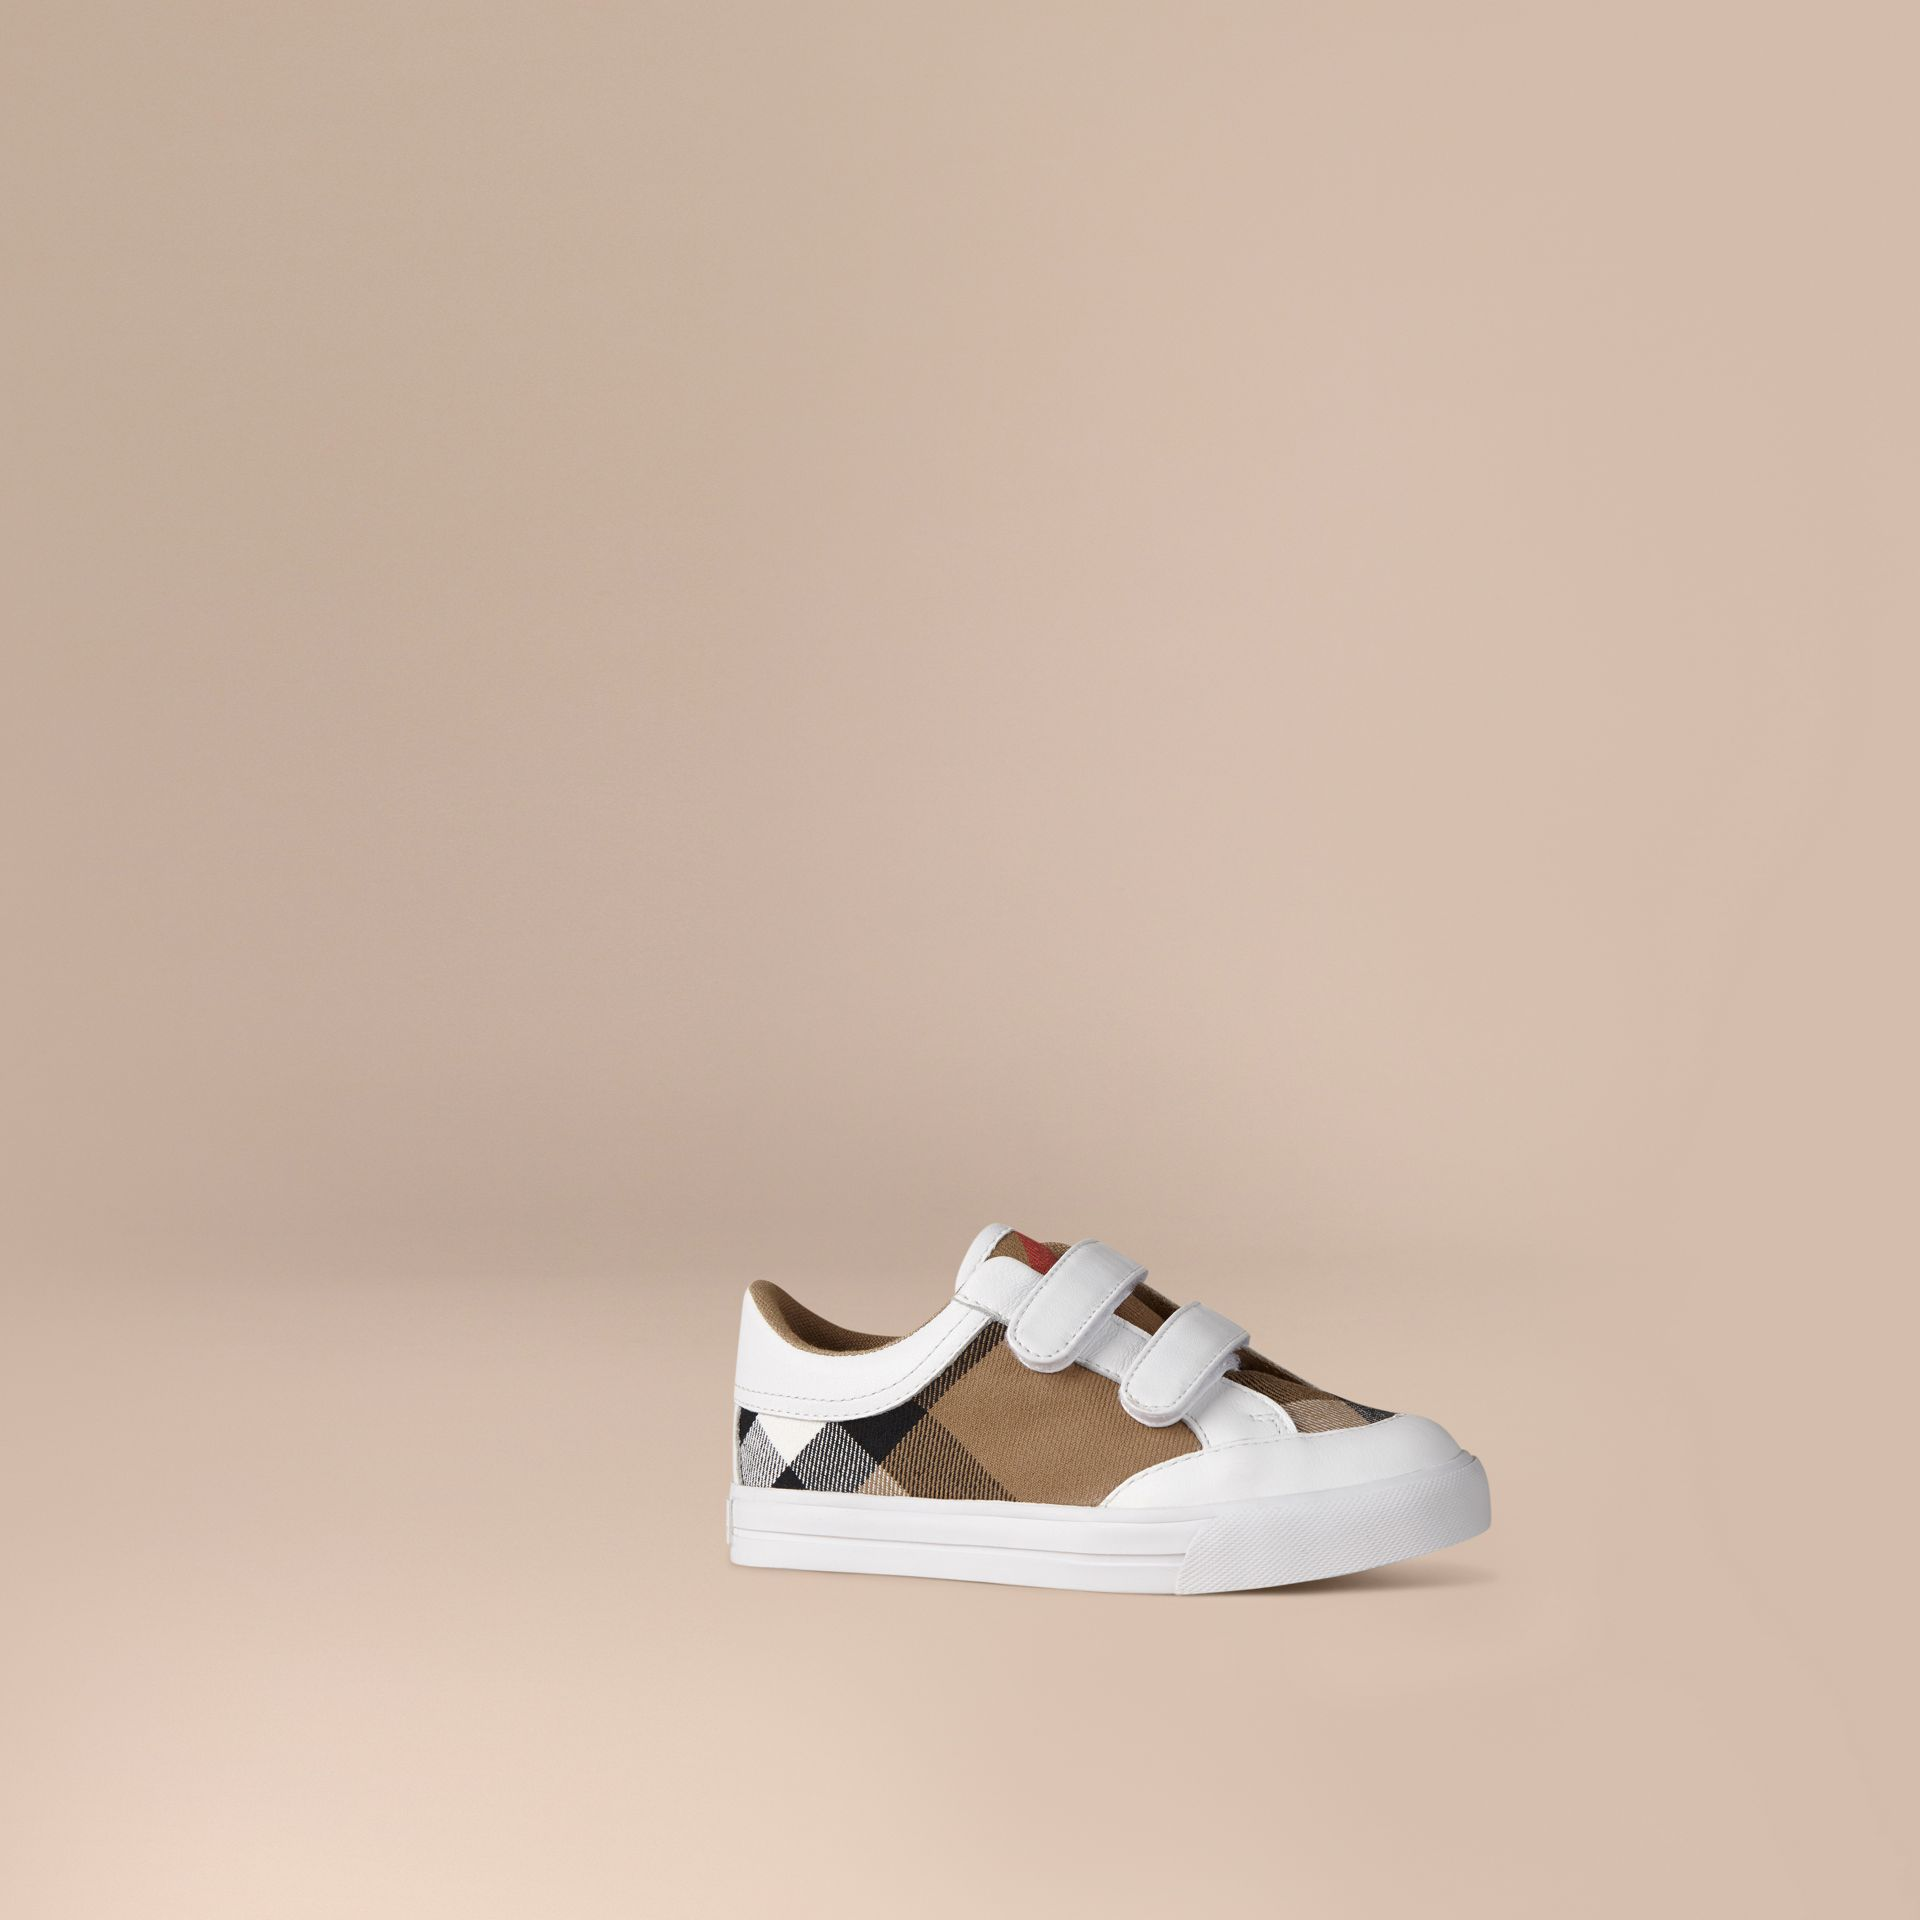 House Check and Leather Trainers in White | Burberry - gallery image 1